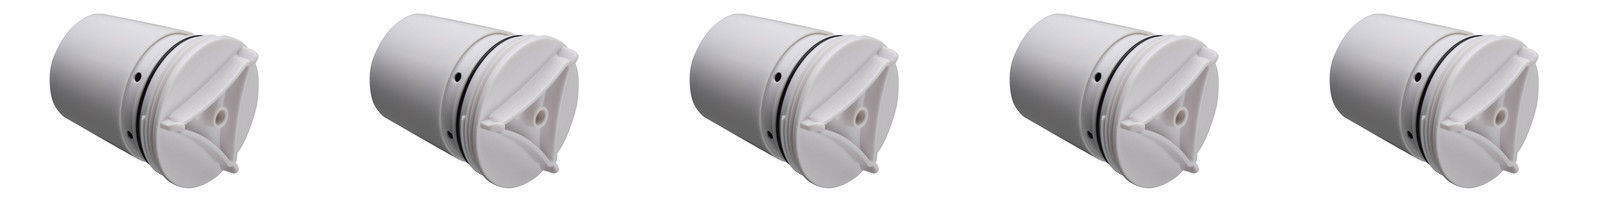 Culligan Fm-15ra Level 3 Faucet Filter Replacement Cartridge (pack ...